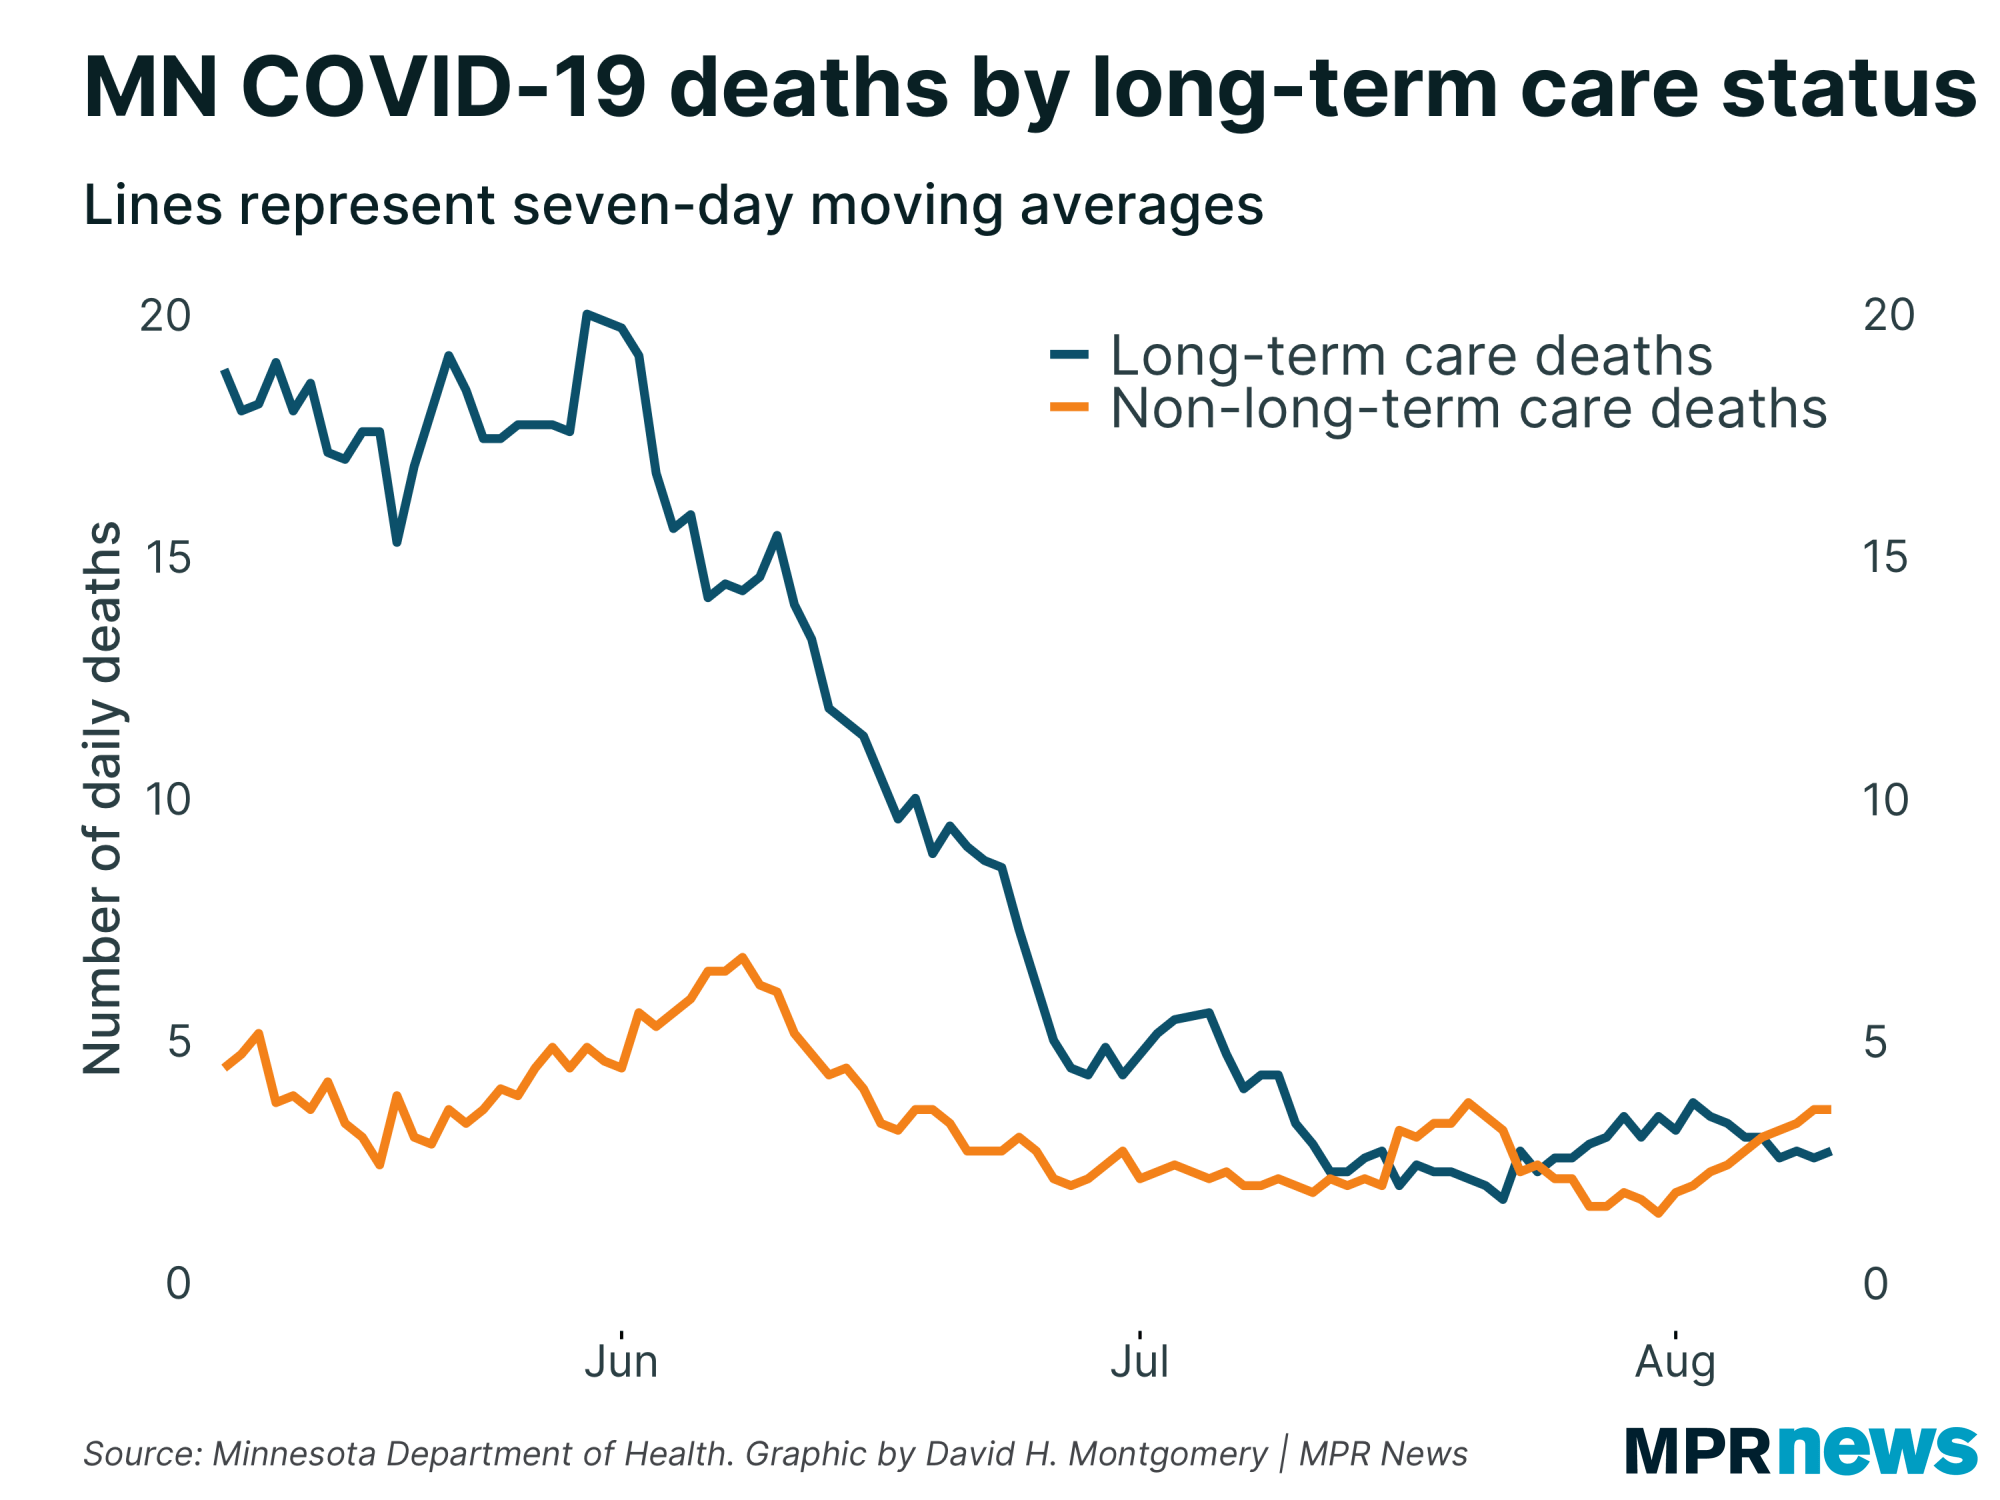 Number of daily COVID-19 deaths in and out of long-term care facilities.